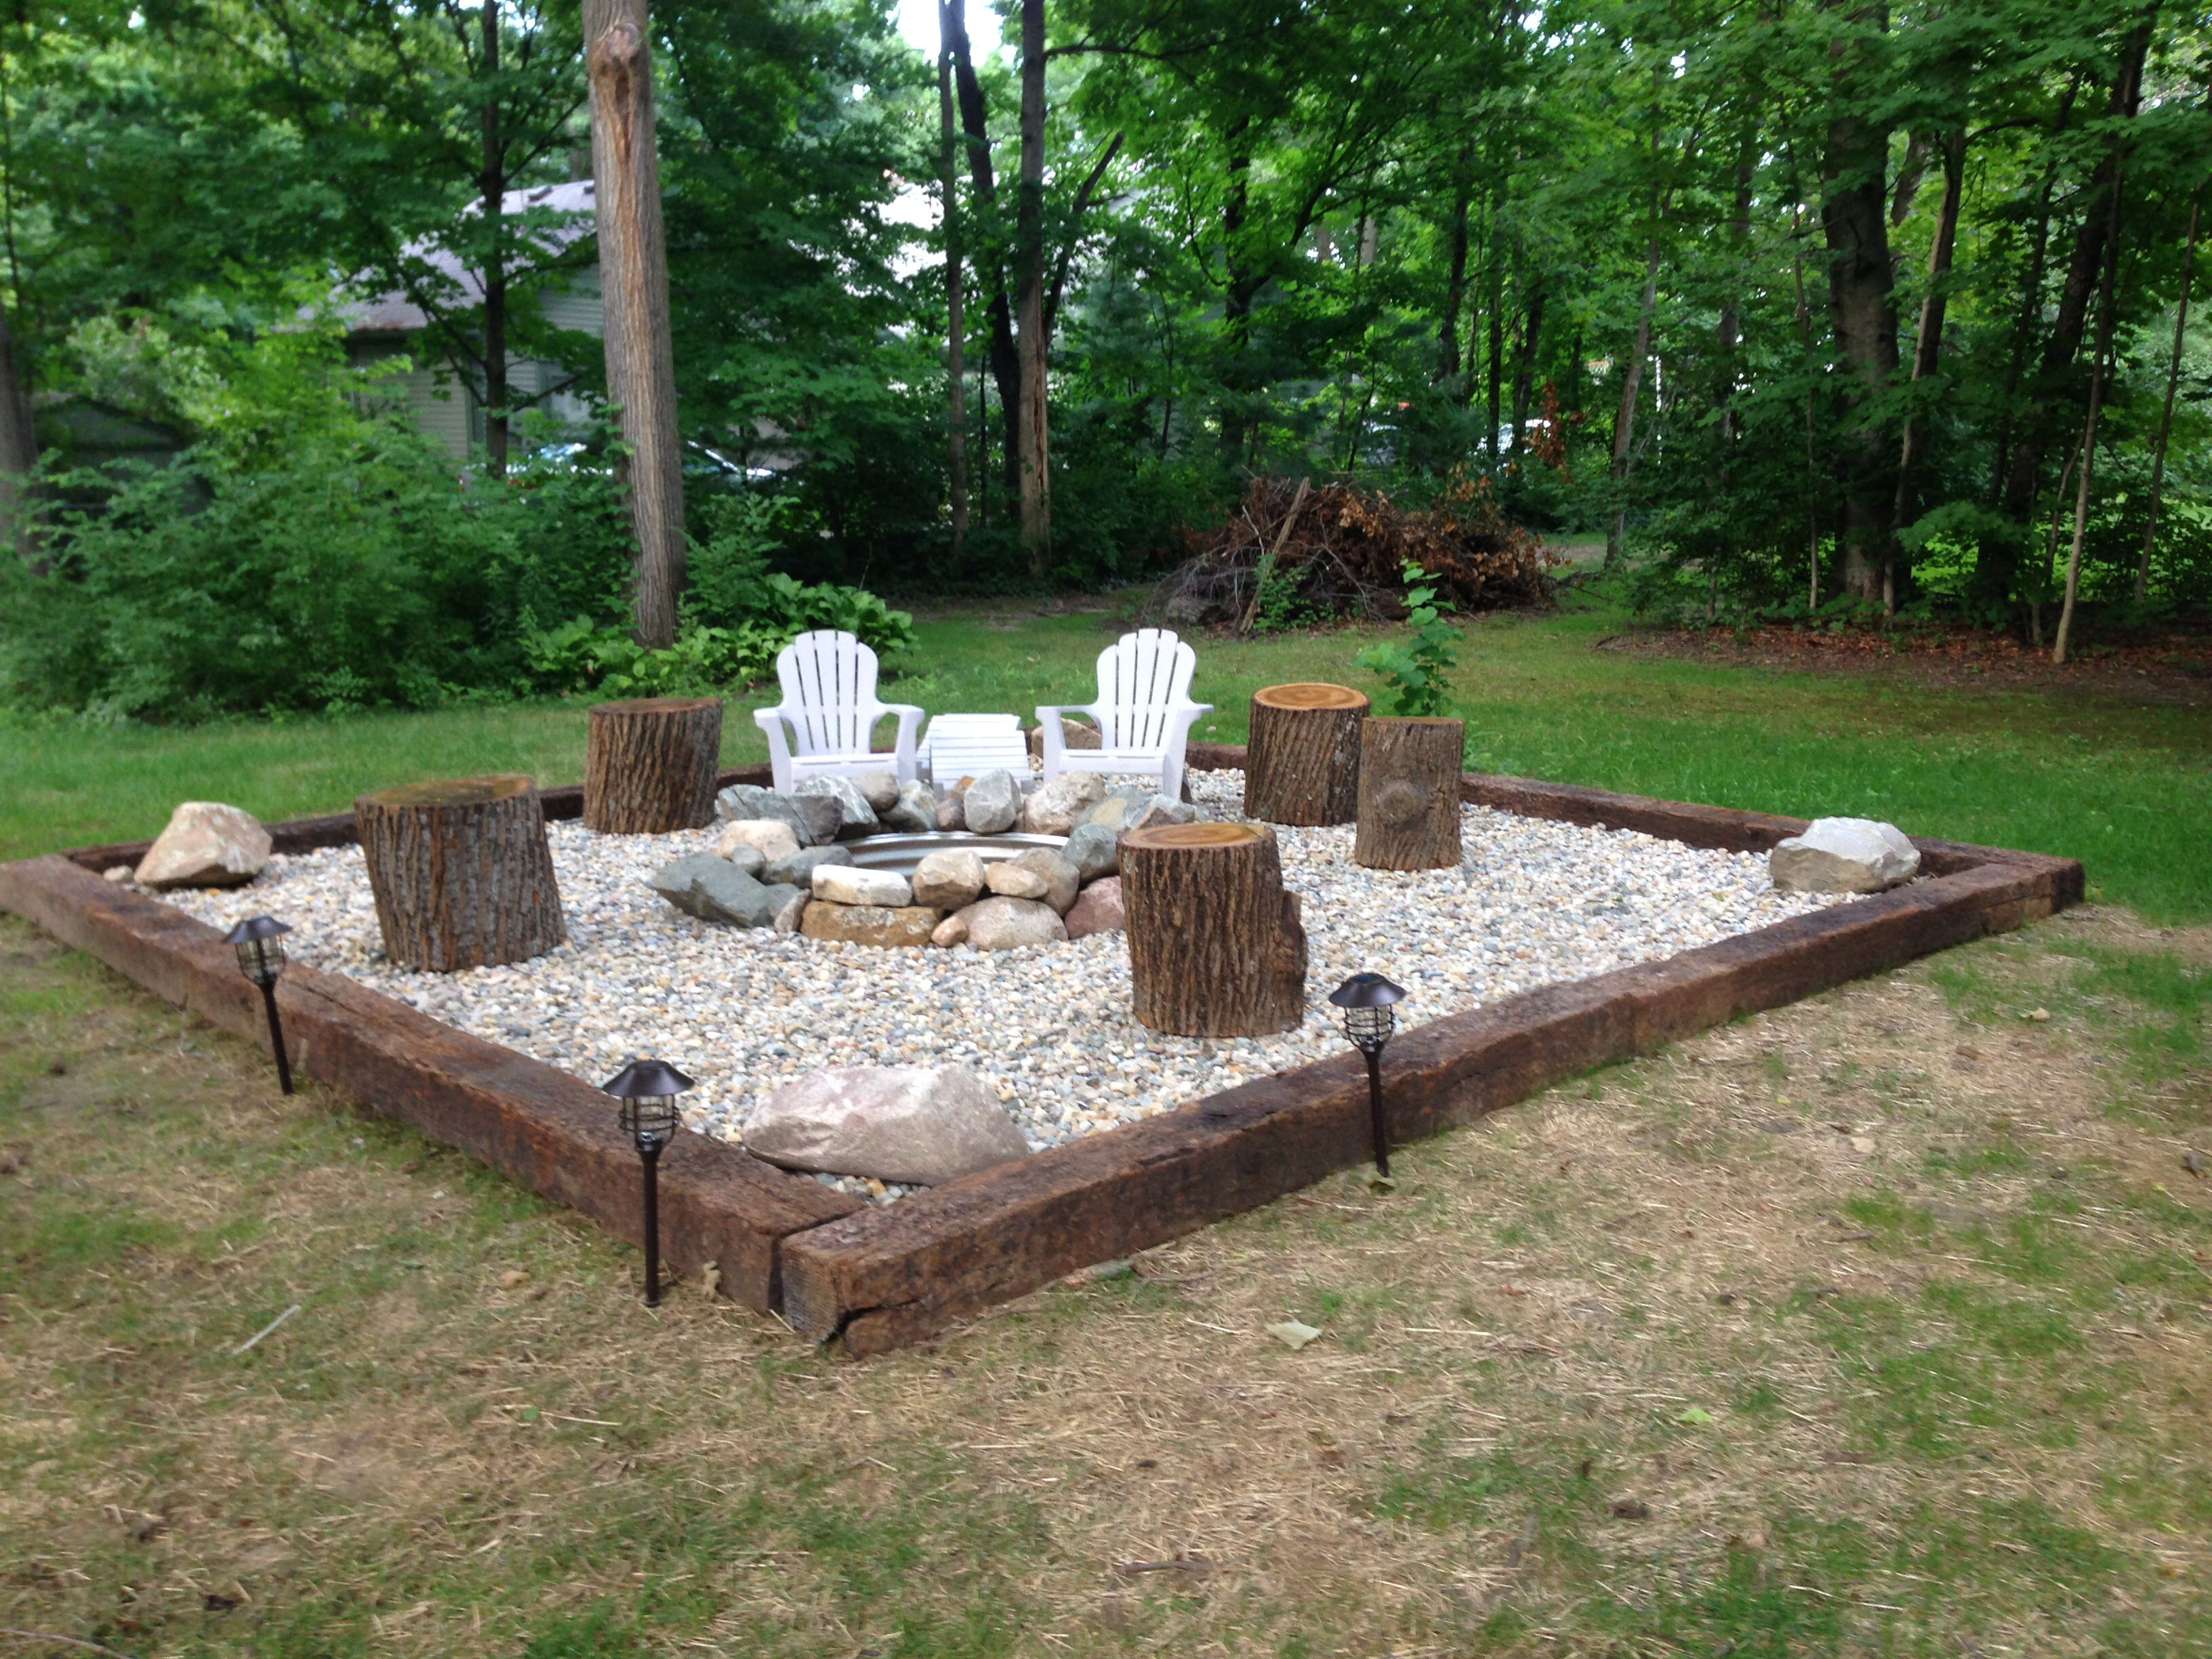 inspiration for backyard fire pit designs outdoor backyard seating fire pit designs fire. Black Bedroom Furniture Sets. Home Design Ideas